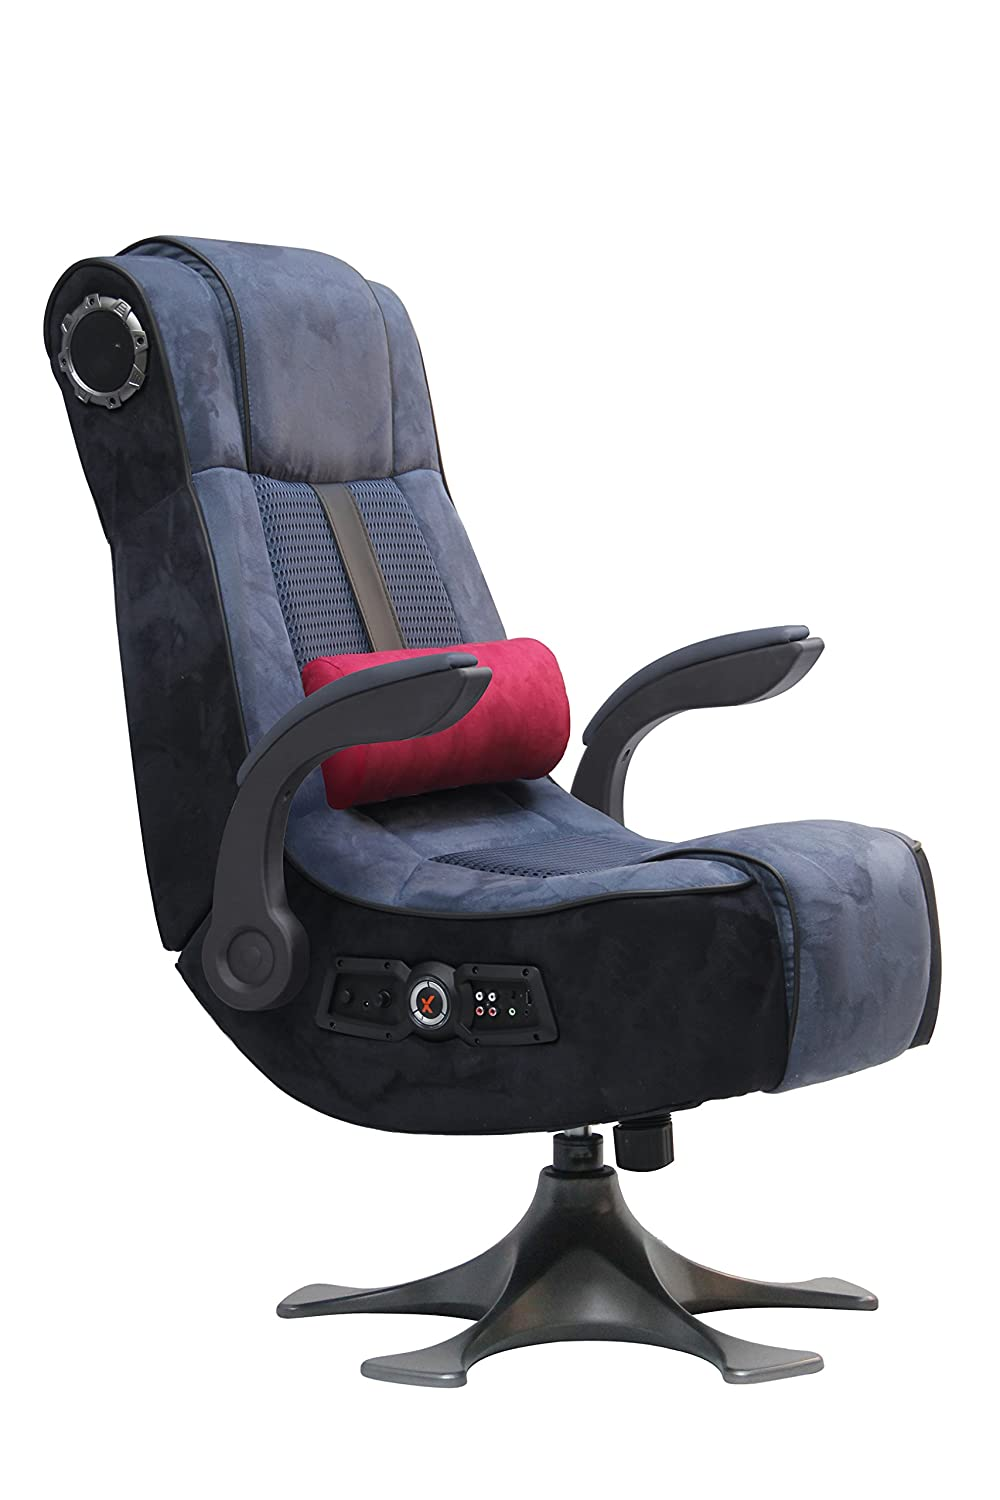 Video Game Chairs Best Pc Gaming Chair – X Rocker Pro Series Pedestal Video Gaming Chair Wireless Black